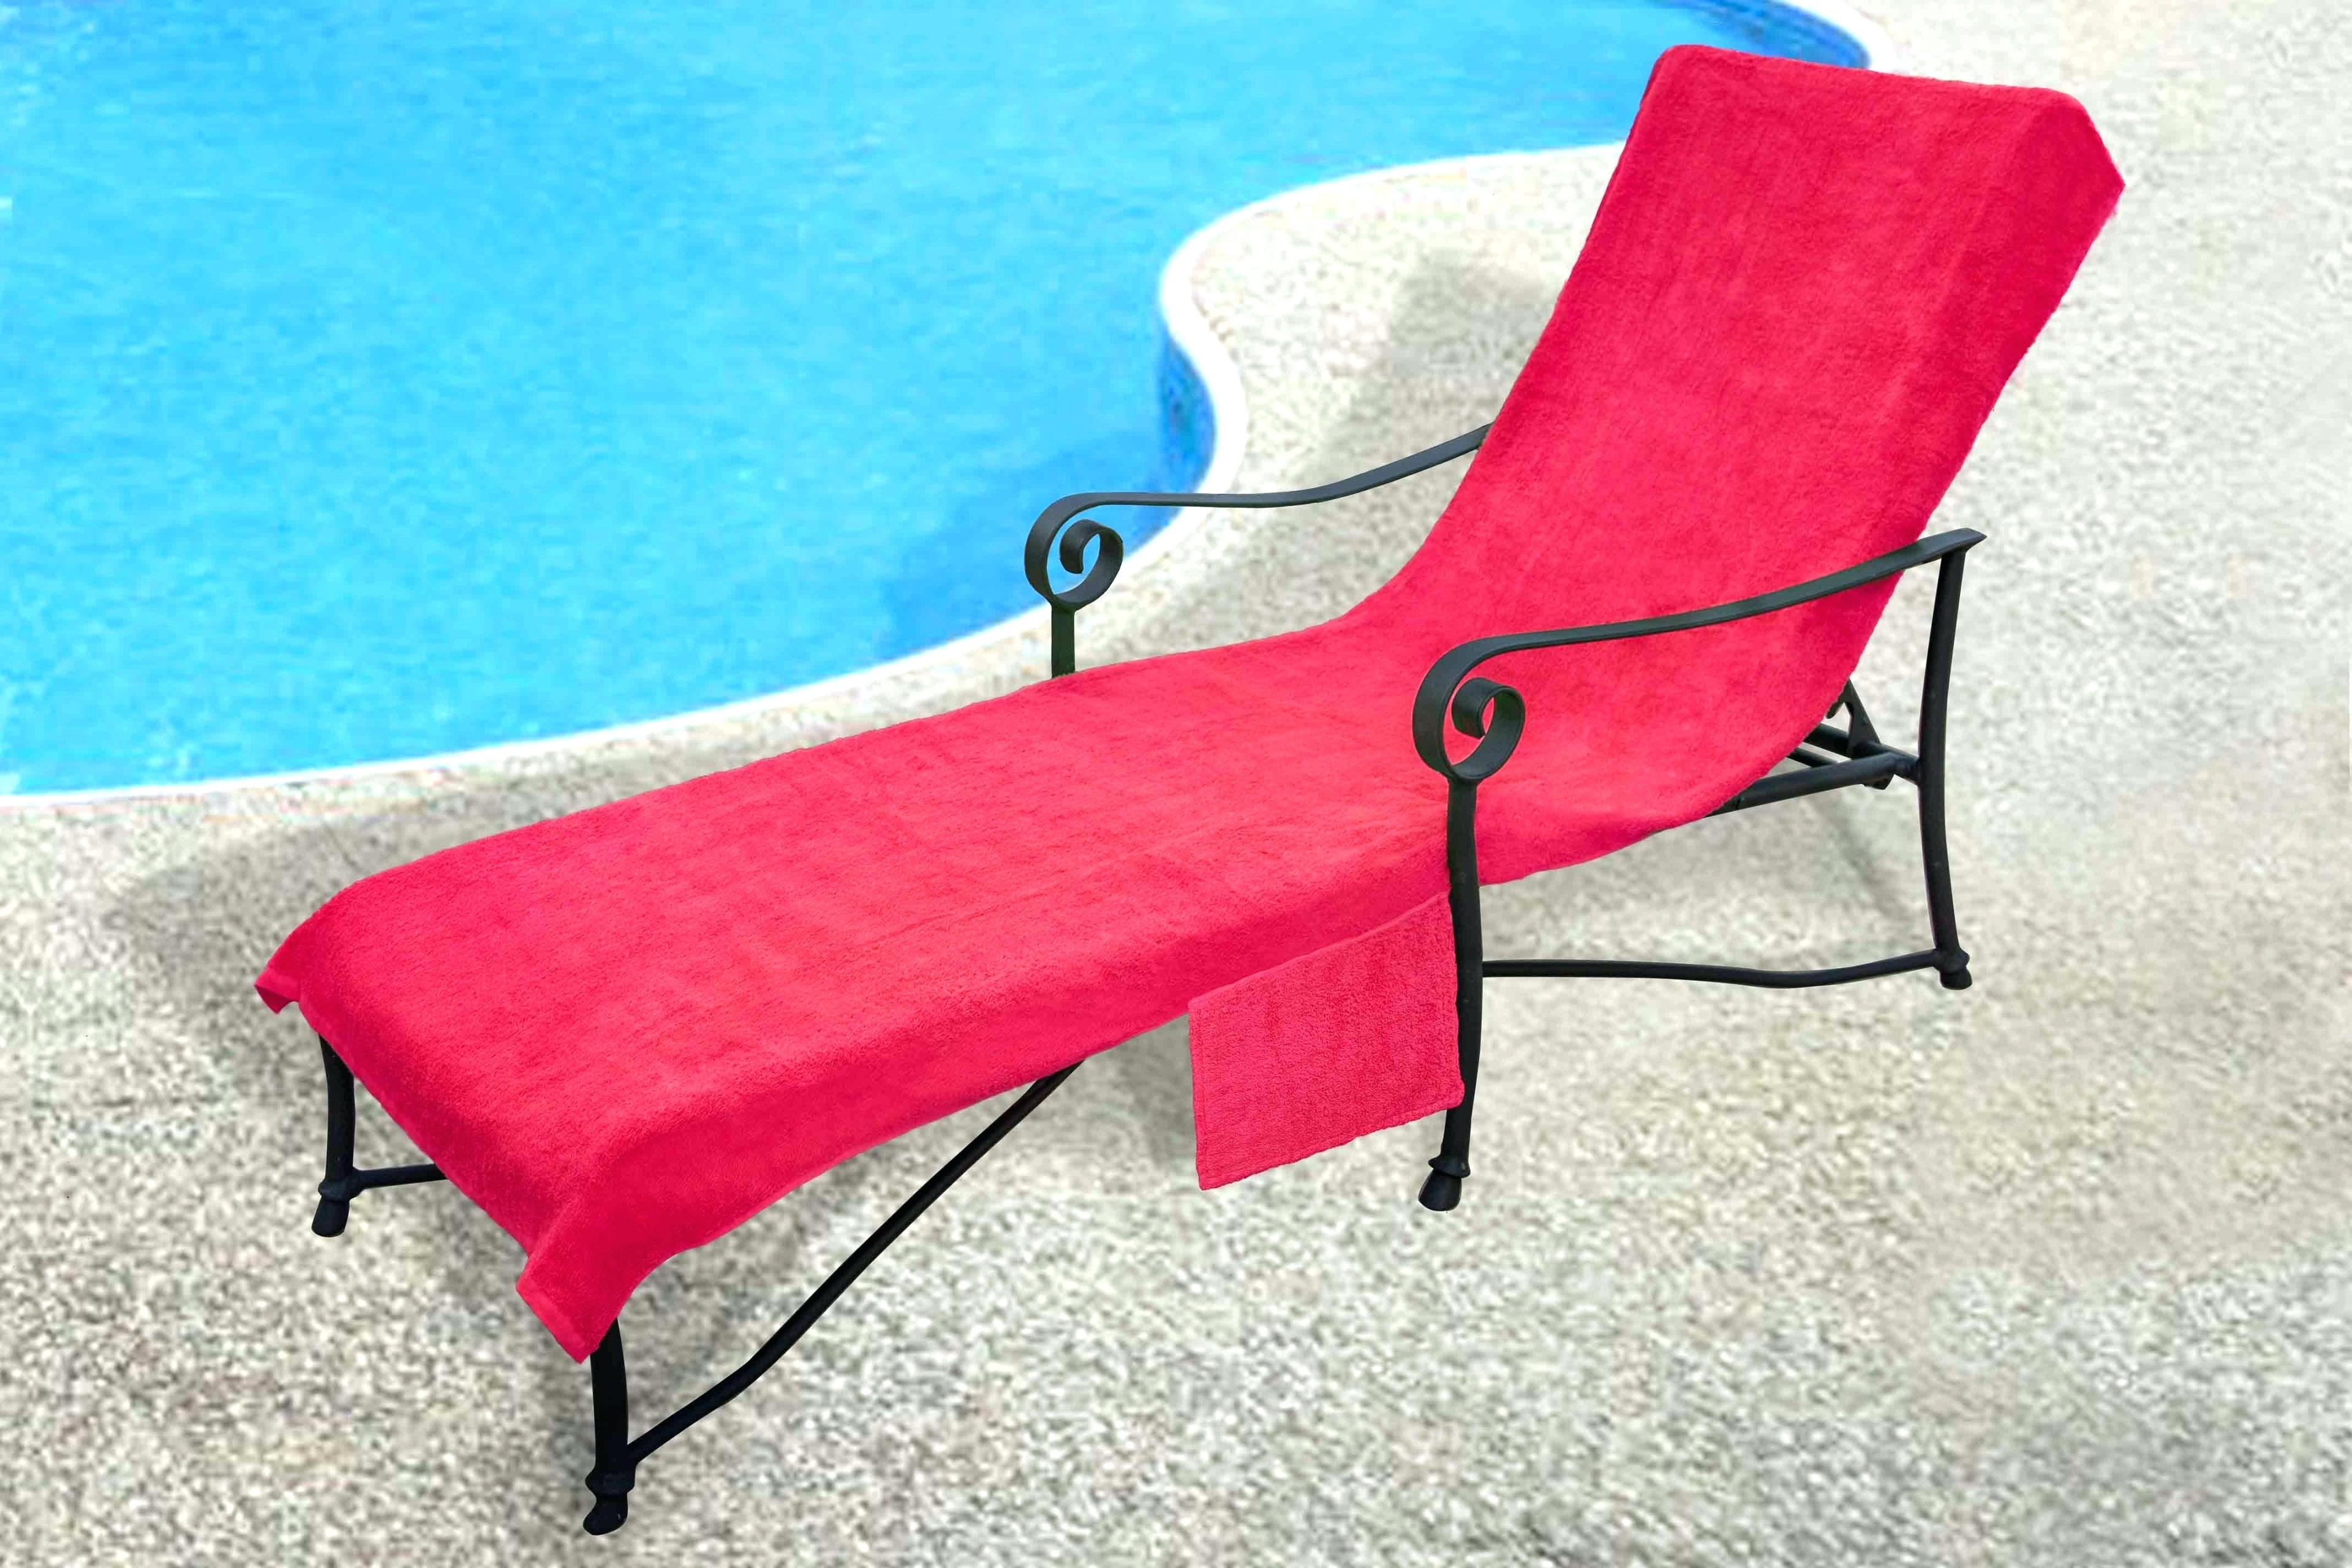 Preferred Chaise Lounge Towel Covers Pertaining To Bahama Beach Towel Chair Covers • Chair Covers Design (View 6 of 15)